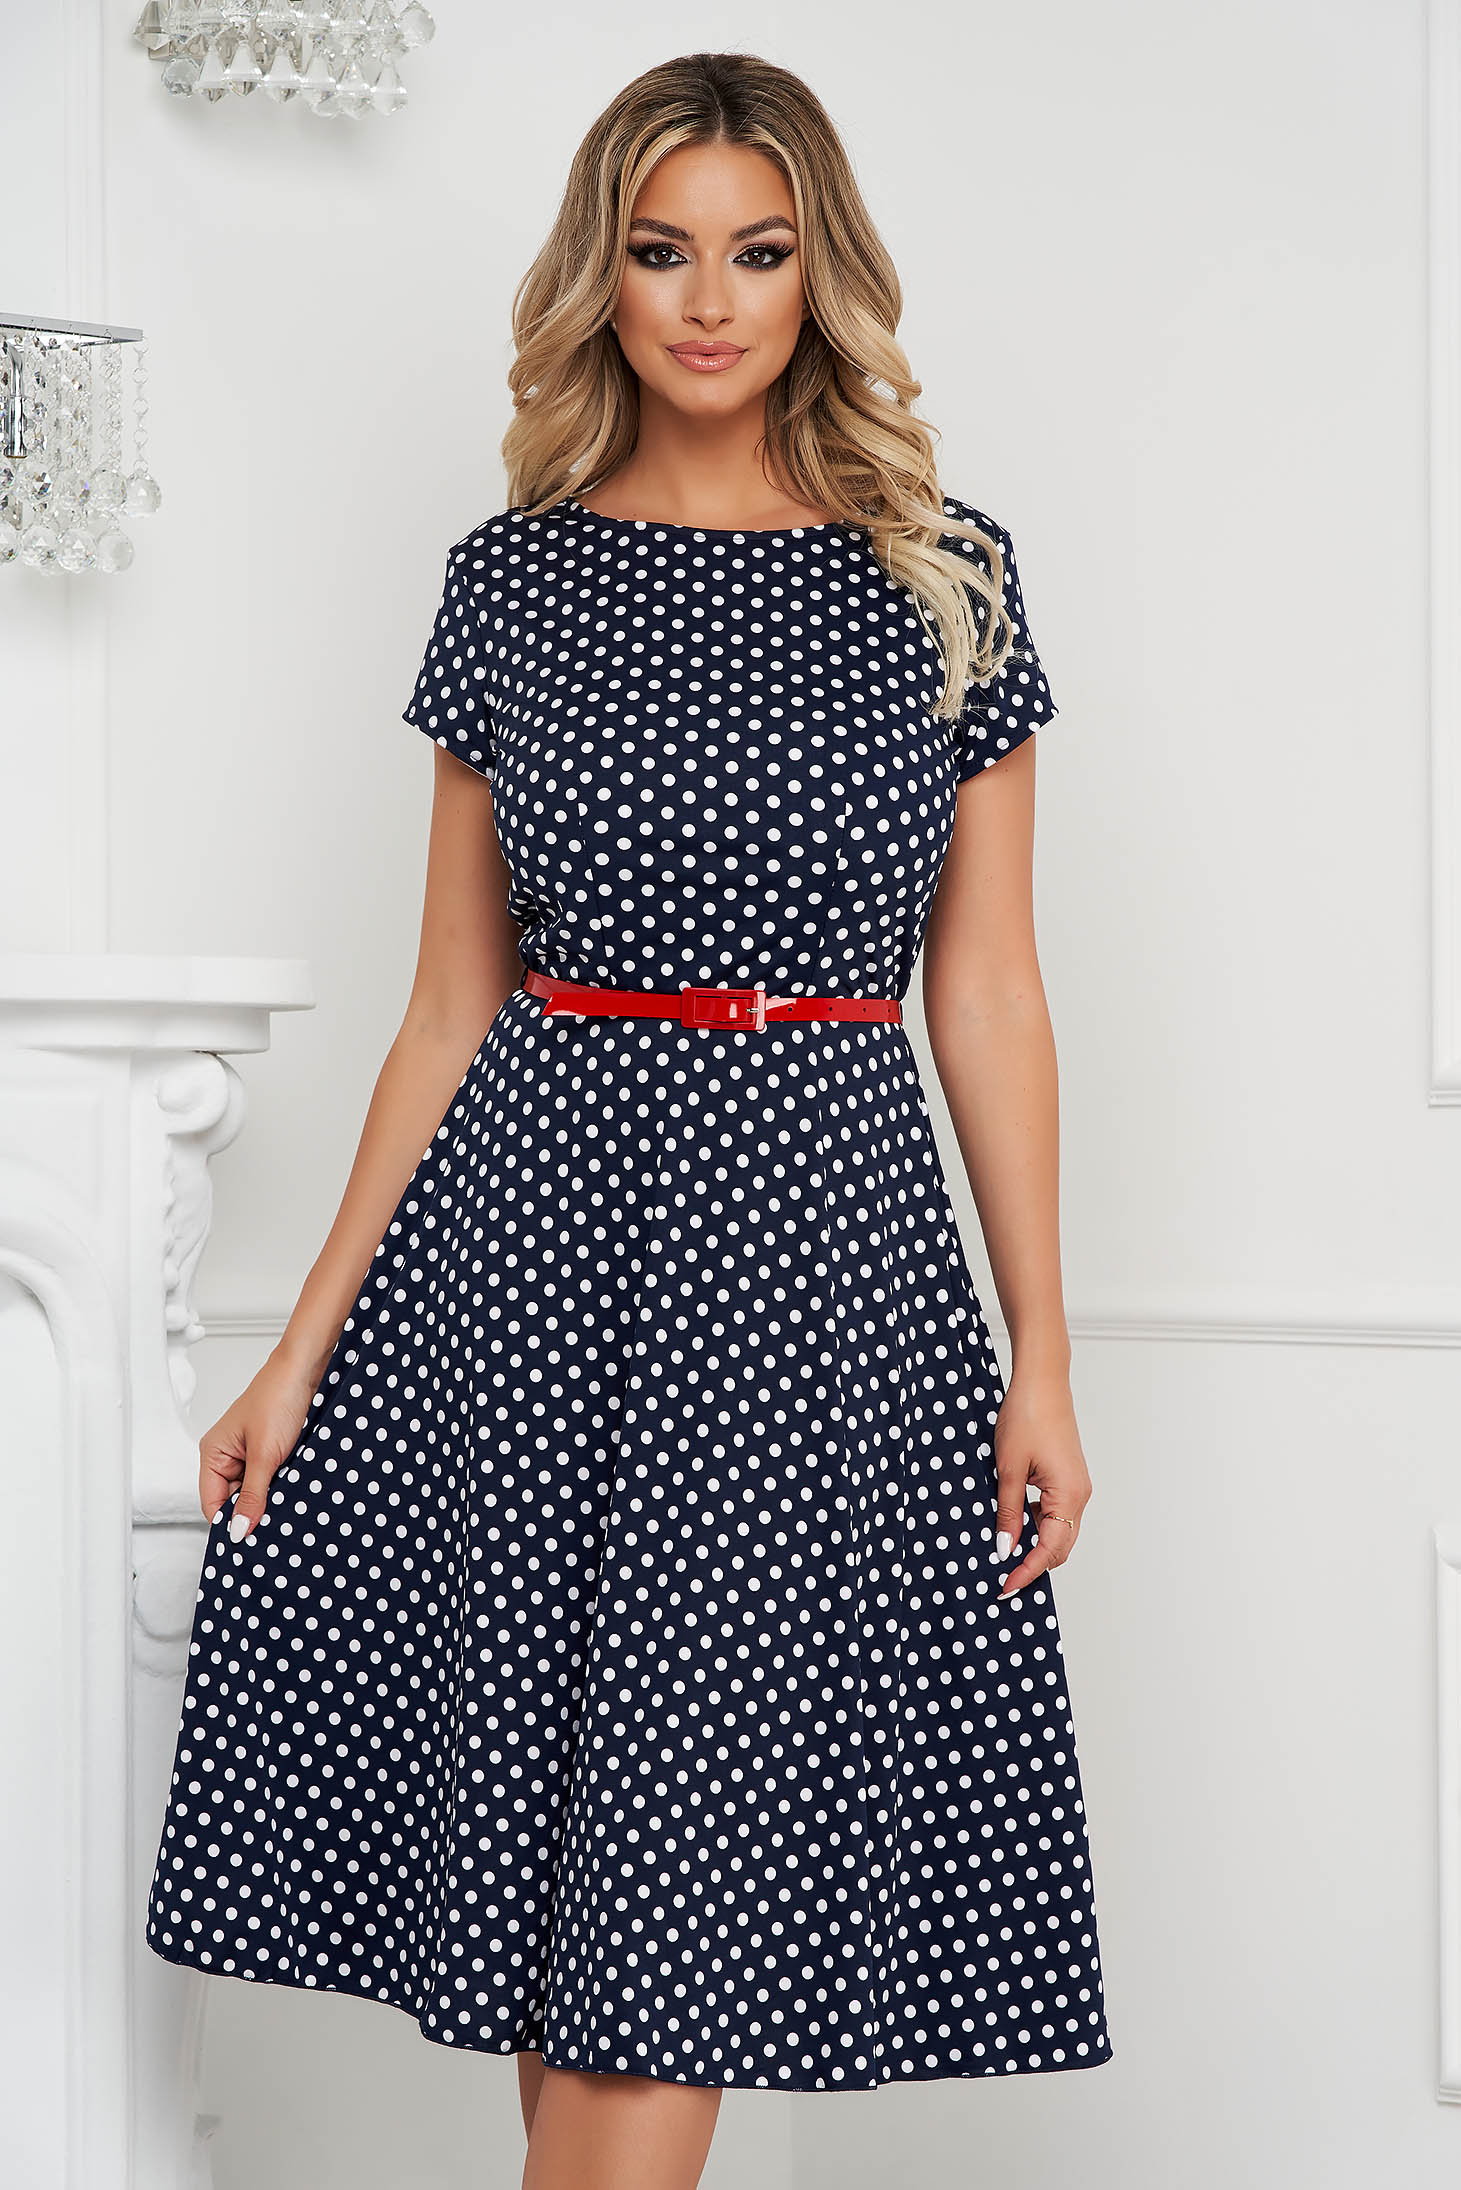 Dress midi office dots print from elastic fabric cloche with elastic waist